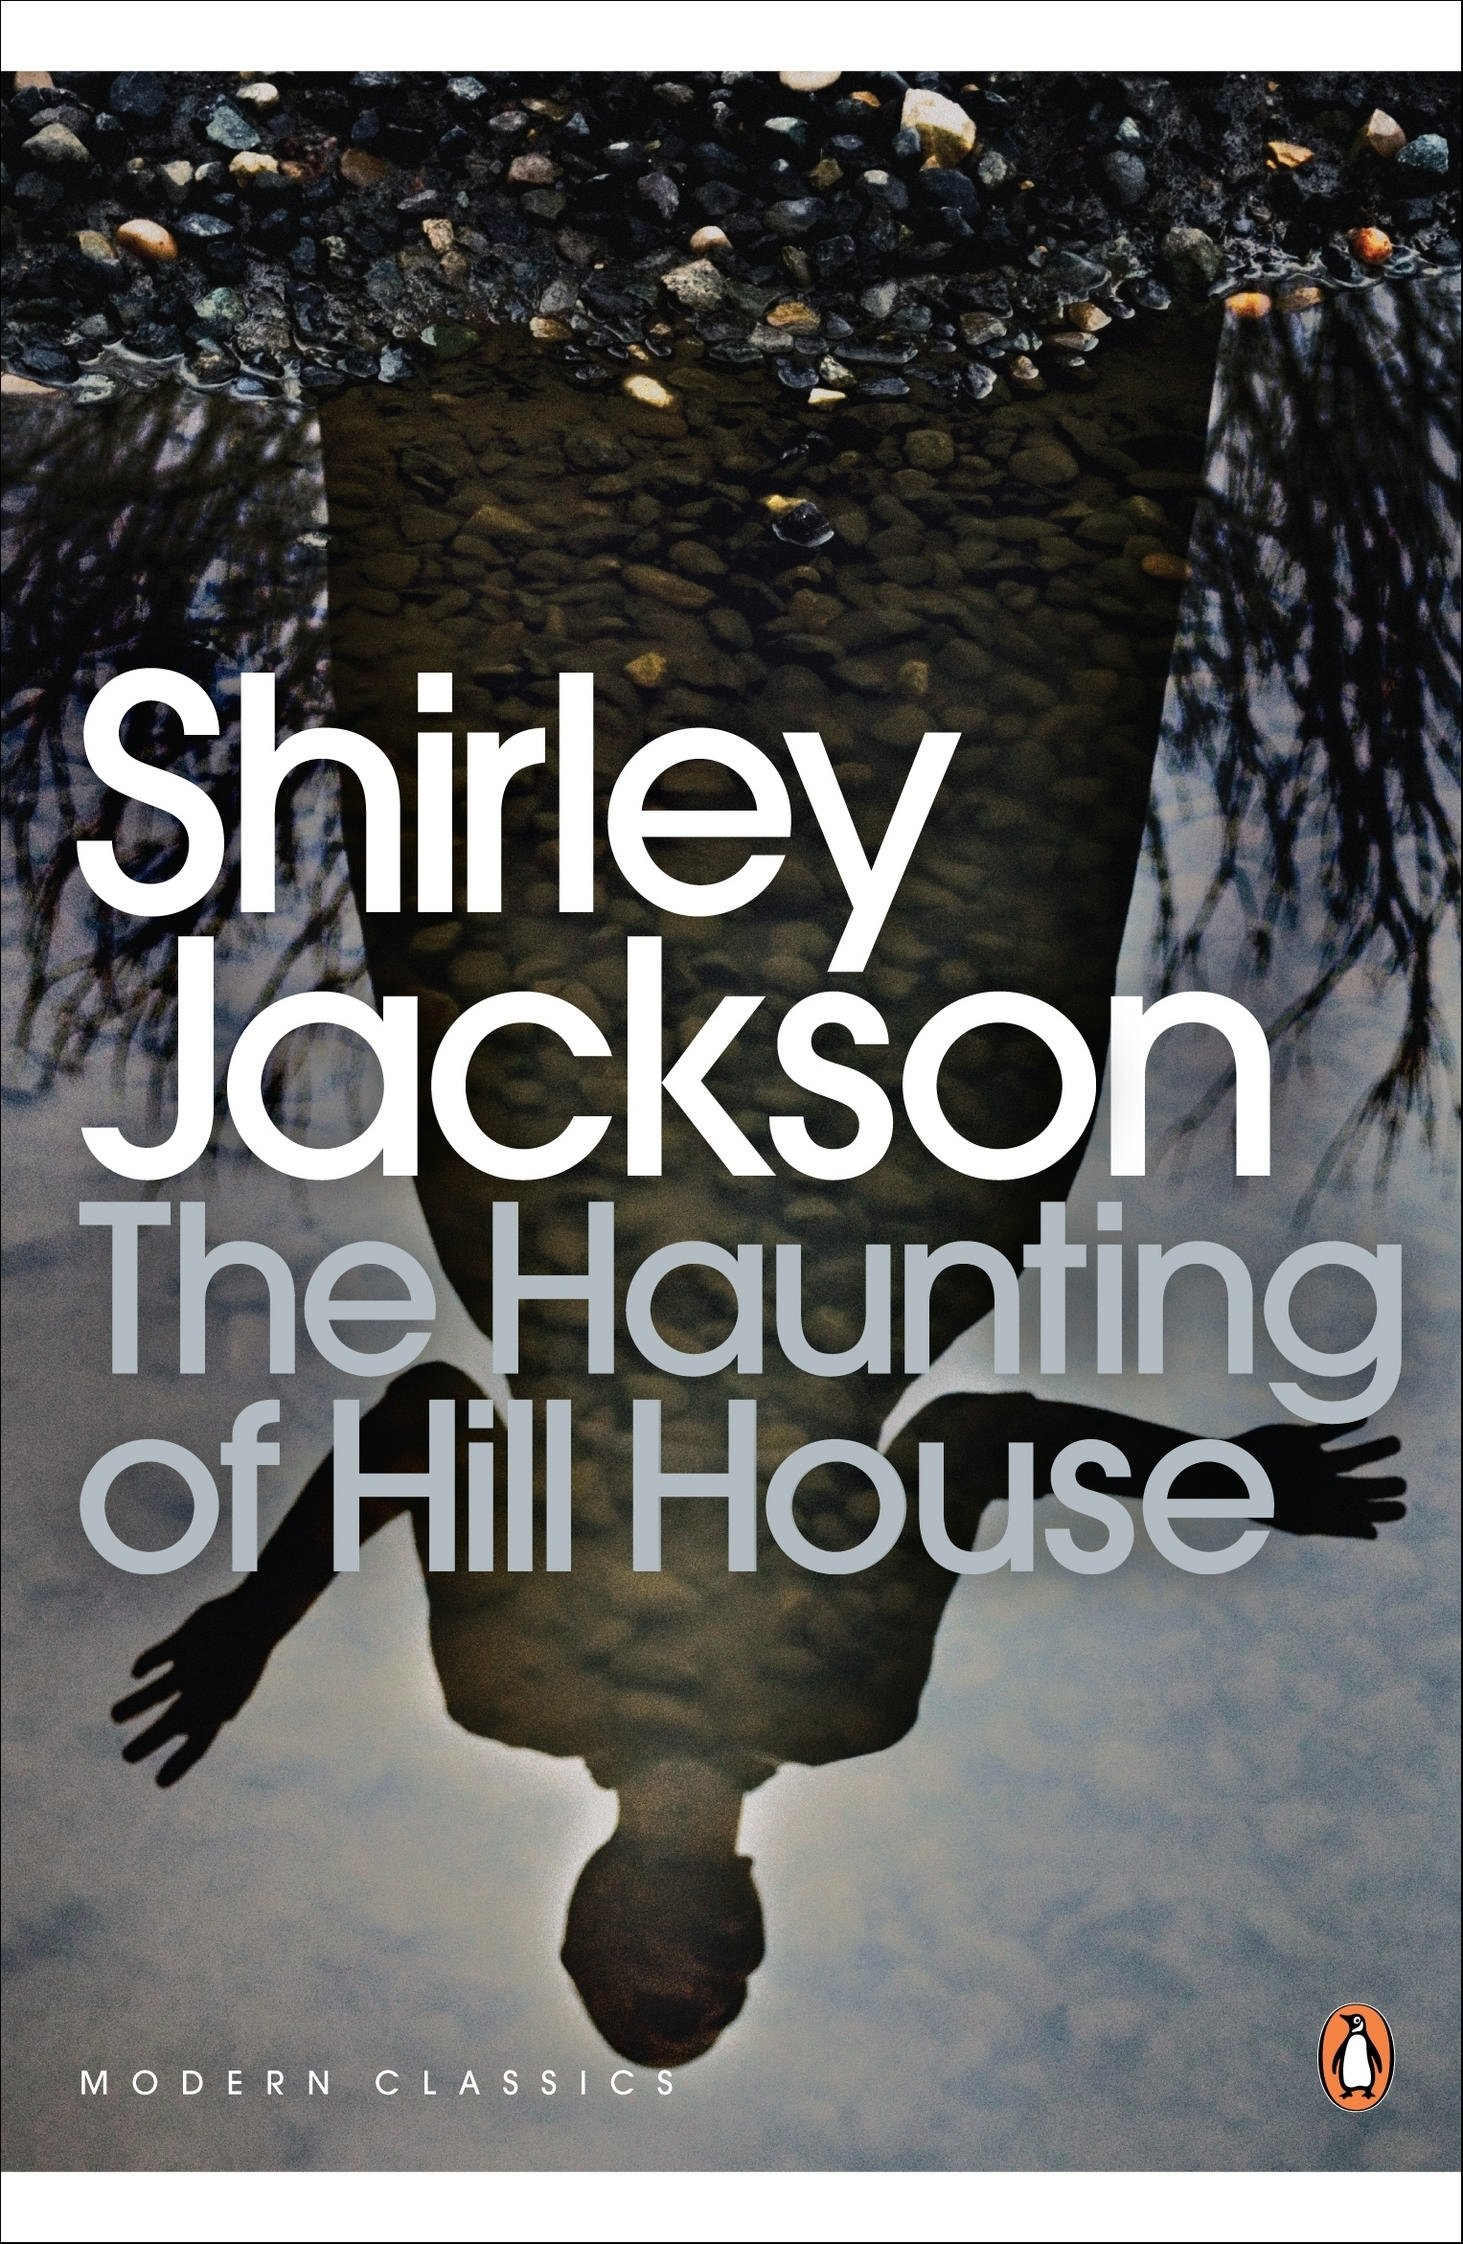 Image result for The Haunting of Hill House by Shirley Jackson